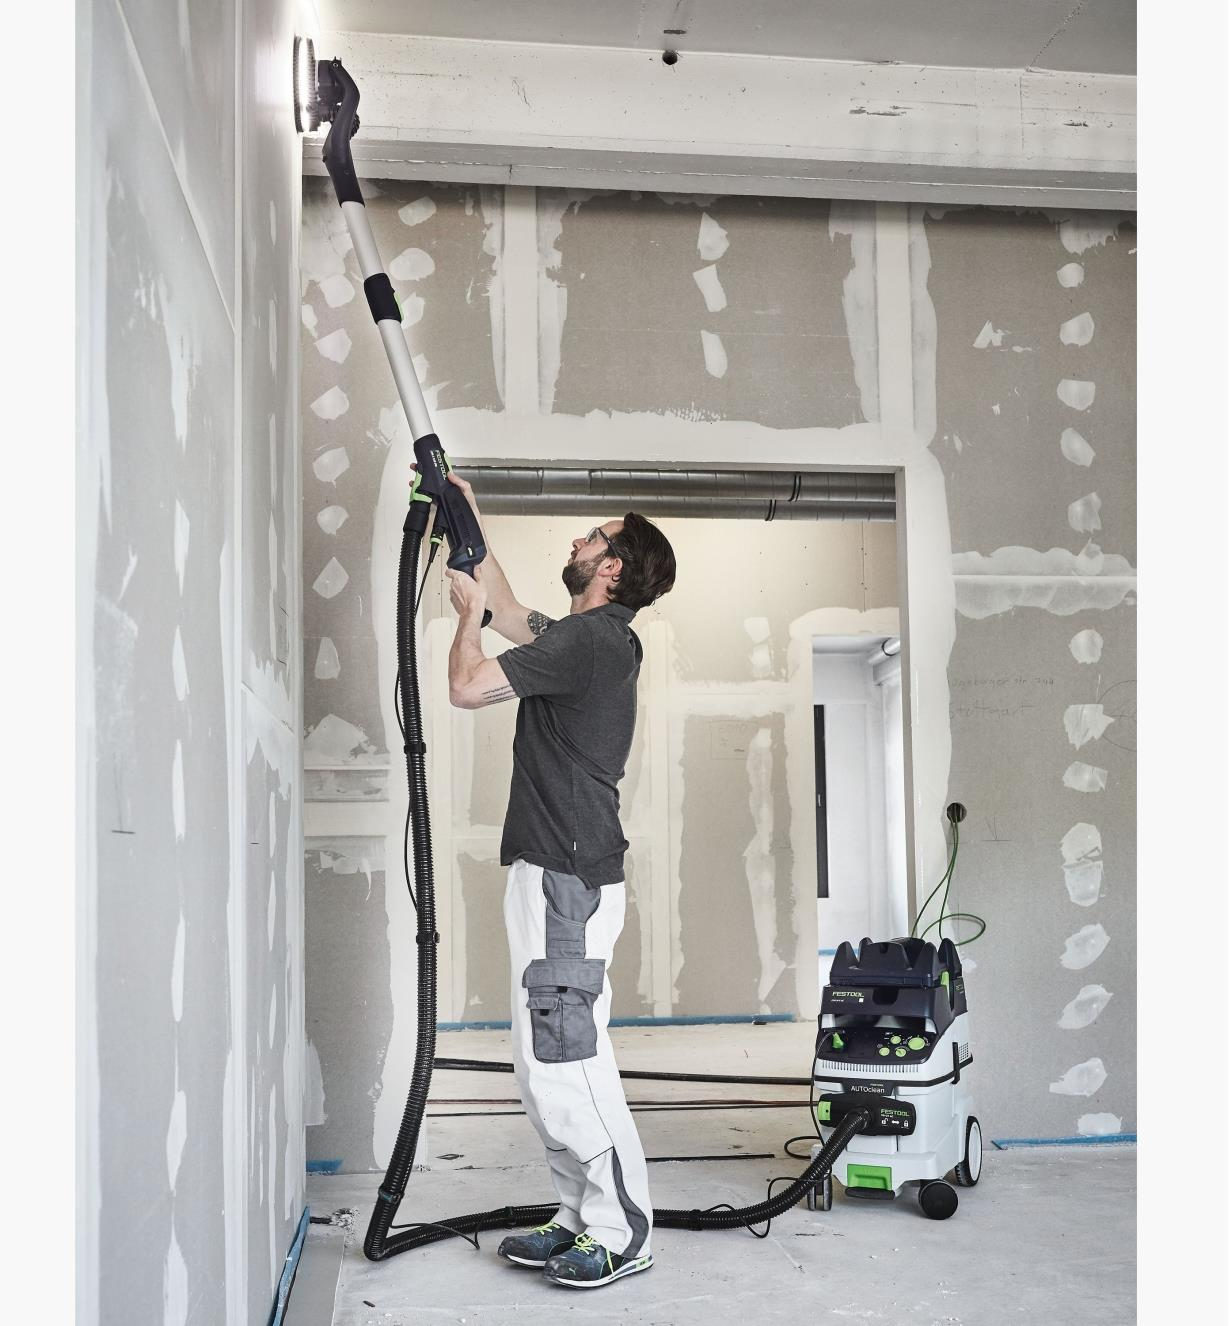 A worker sands the very top of a wall with the Planex LHS 2 225